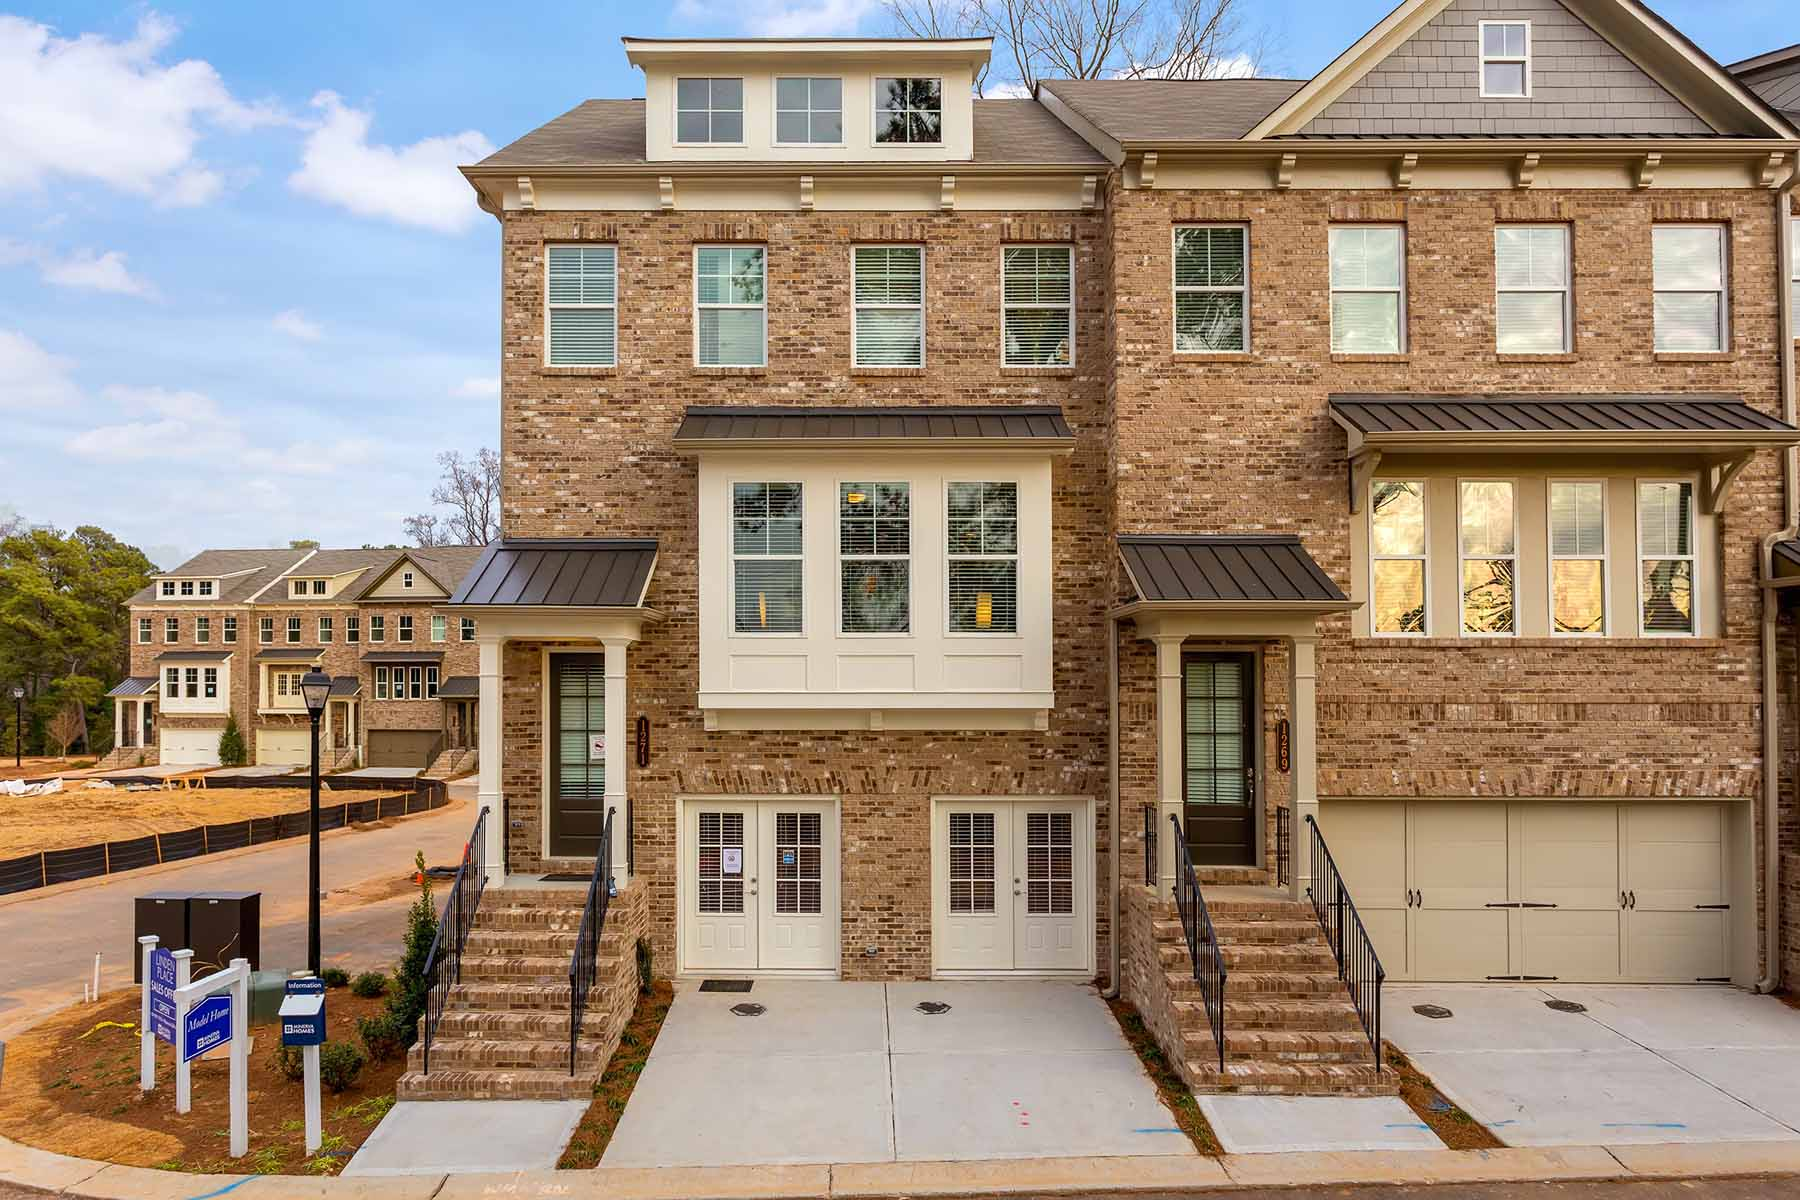 Townhouse for Sale at Linden Place offers unmatched convenience, lifestyle and luxury townhome living! 1303 Linden Court No. 16 Atlanta, Georgia 30329 United States